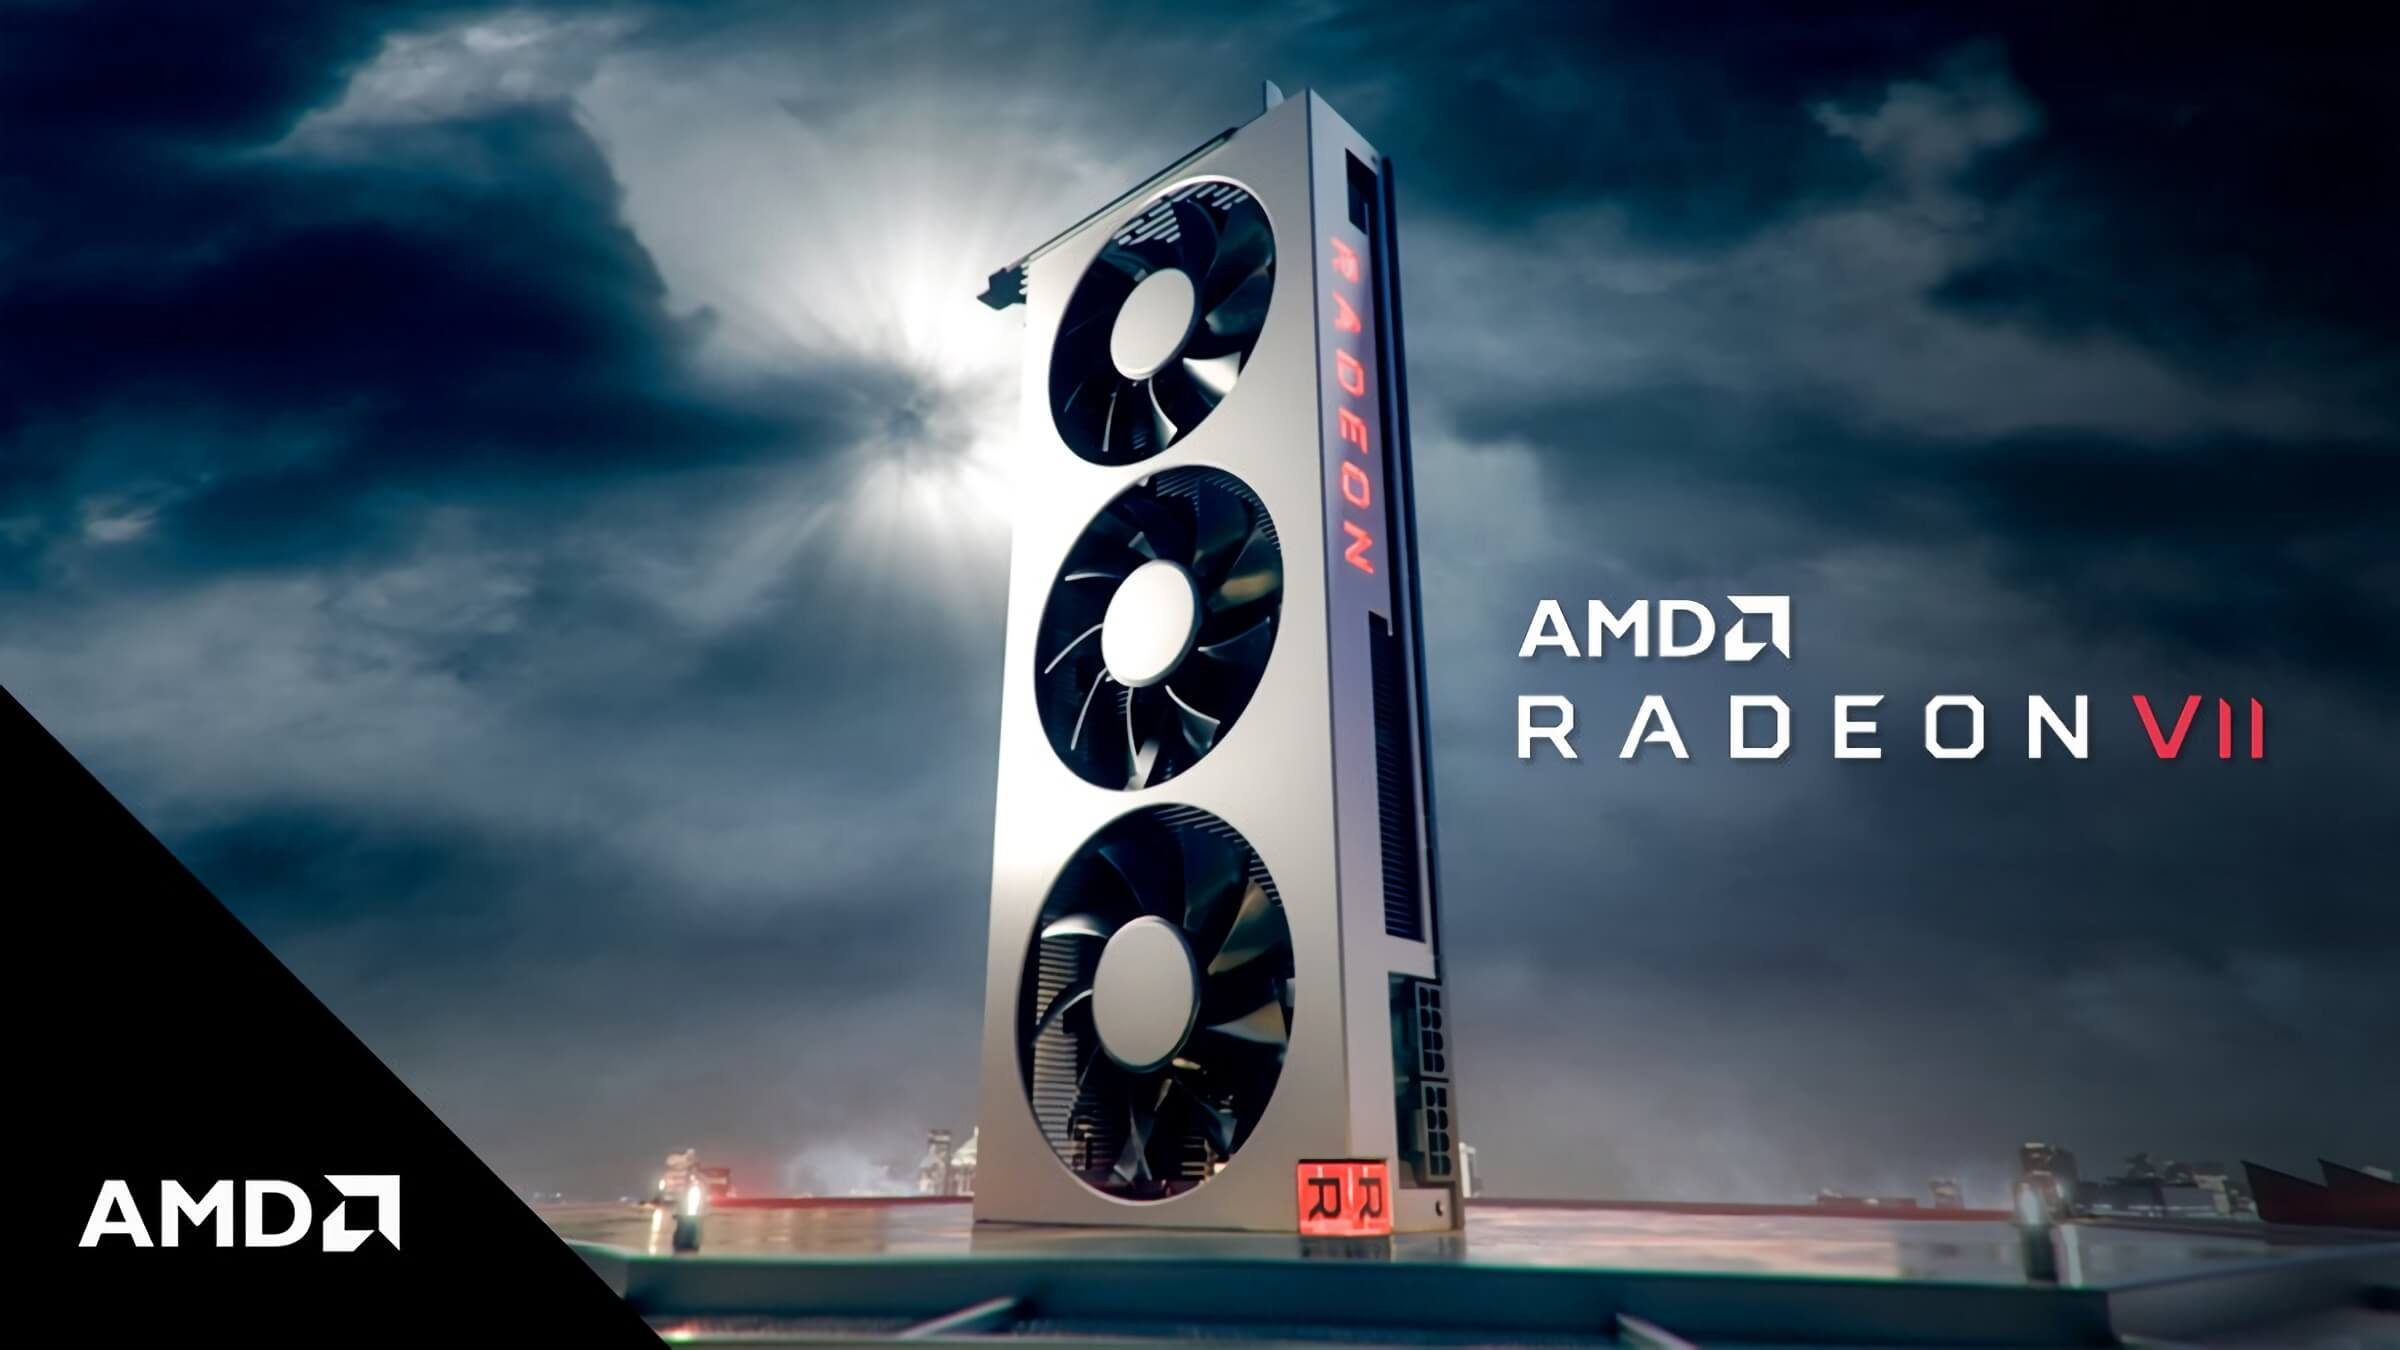 AMD Radeon VII: world's first 7nm gaming GPU is 25-35% faster than Vega 64, ships February 7 for $699